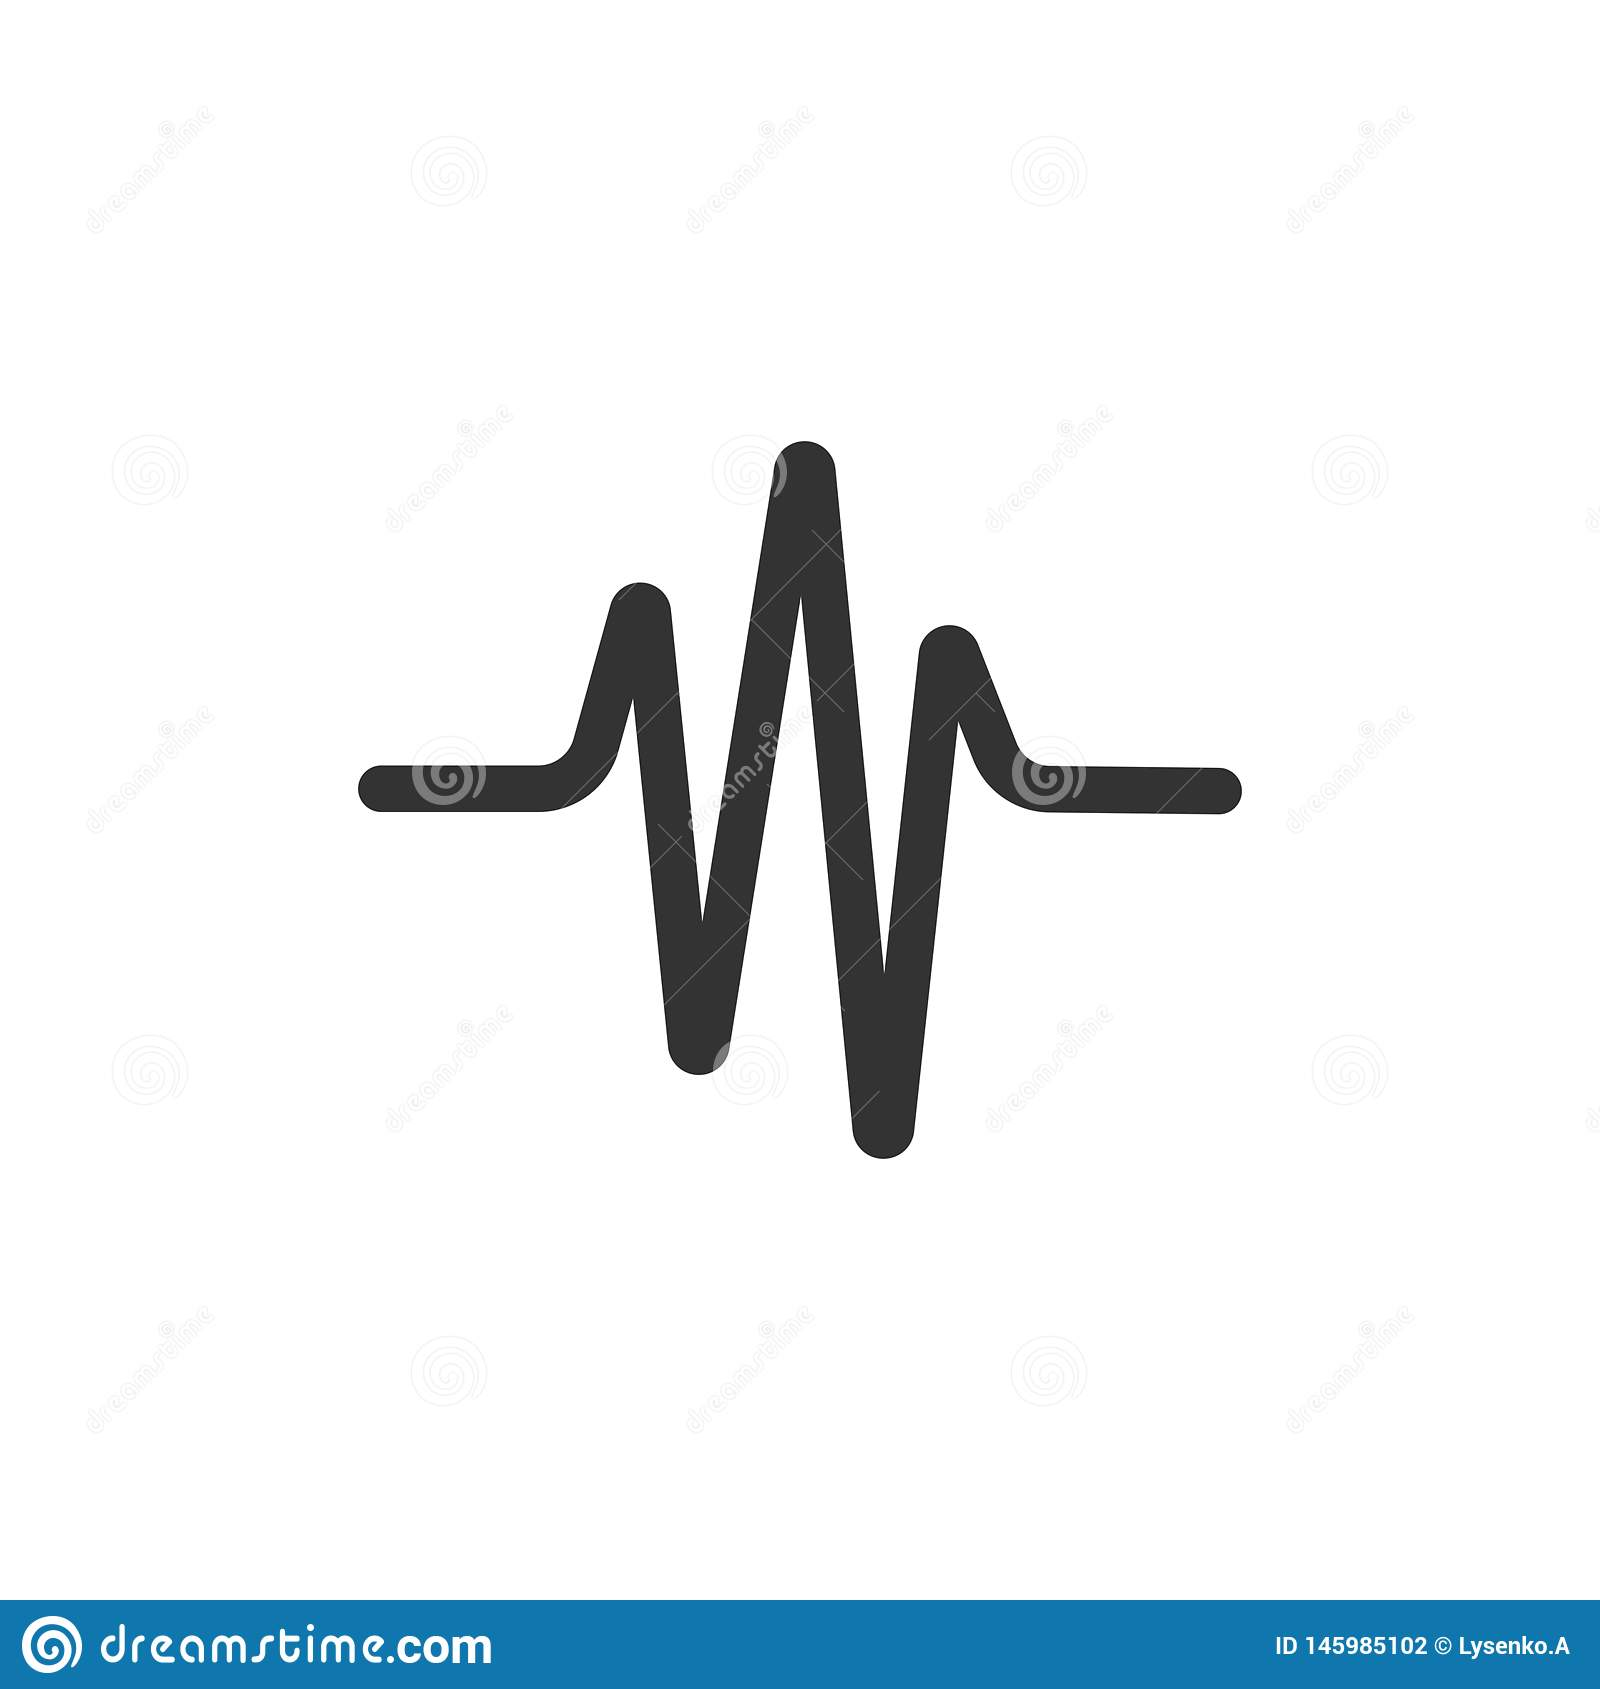 Sound wave icon in flat style. Heart beat vector illustration on white isolated background. Pulse rhythm business concept